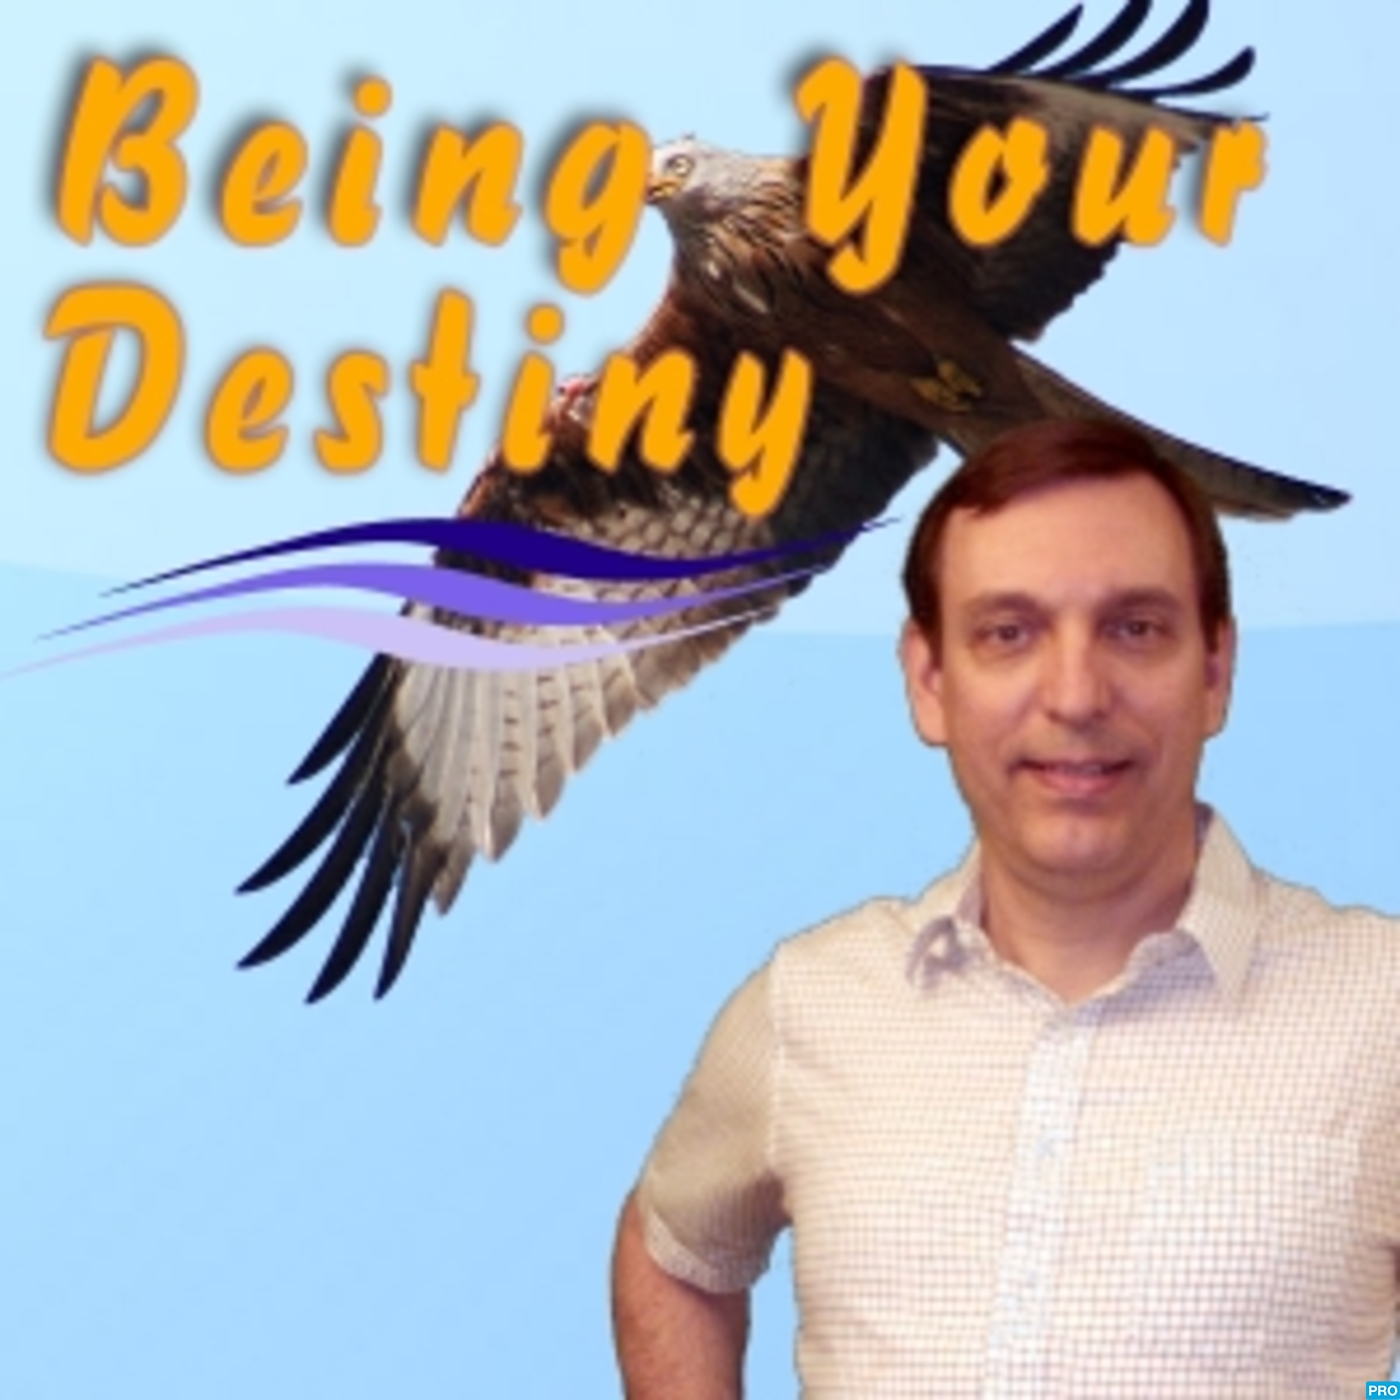 Your Online Destiny for Success